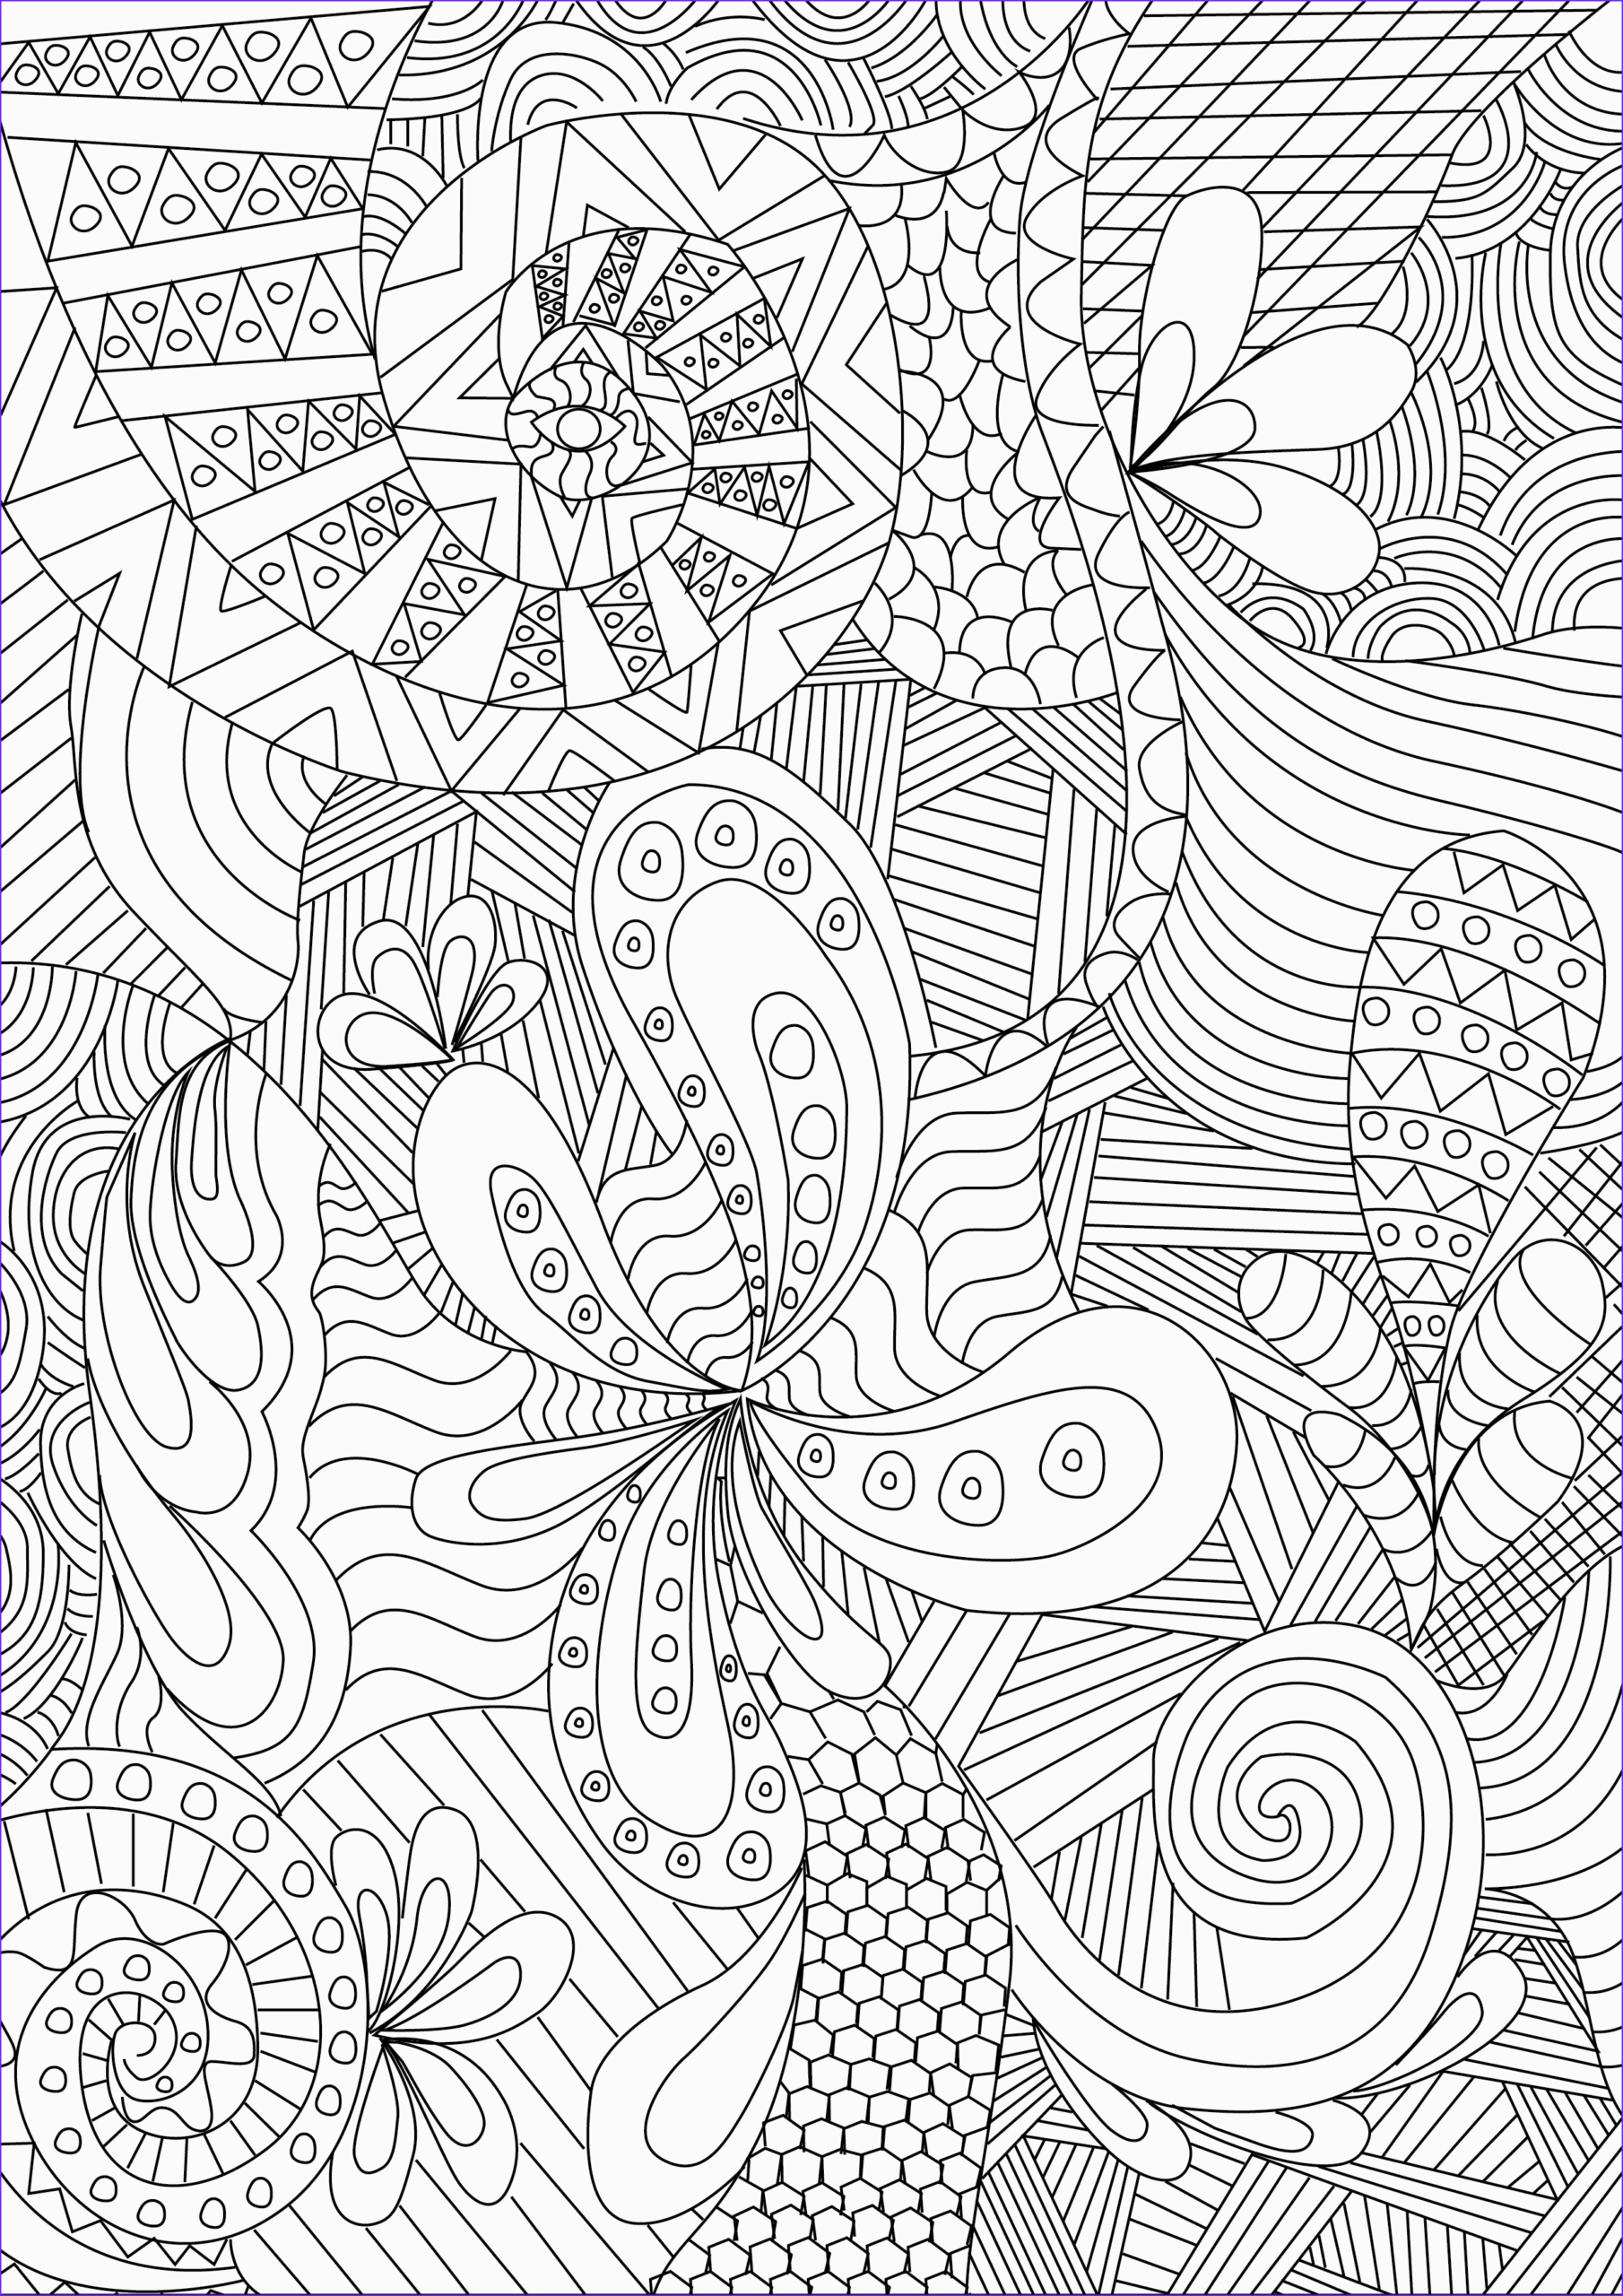 Coloring Images for Adults Awesome Photos Zentangle Colouring Pages In the Playroom